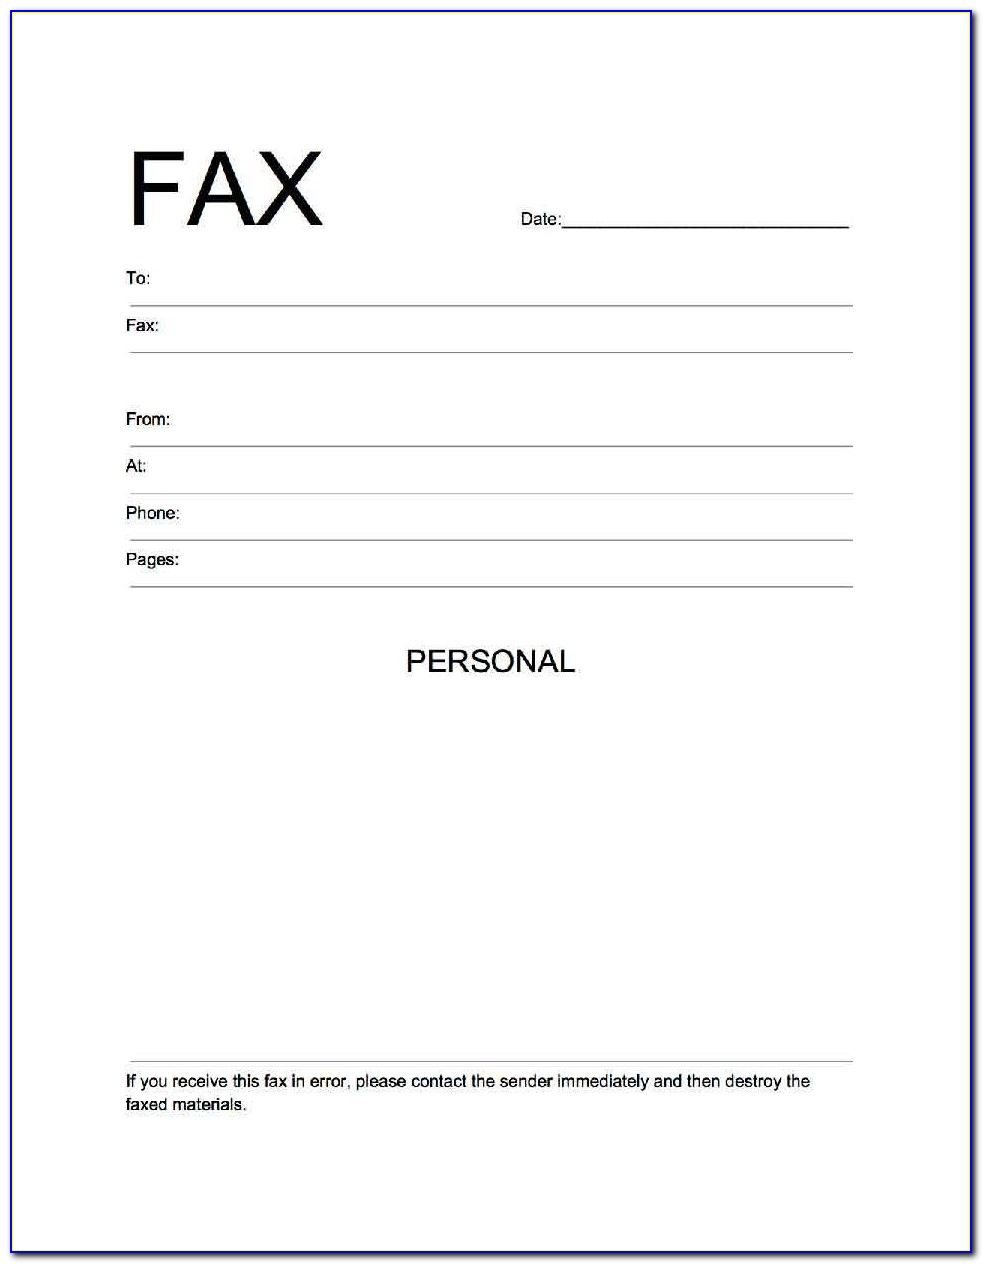 Free Fax Cover Sheet Template To Print